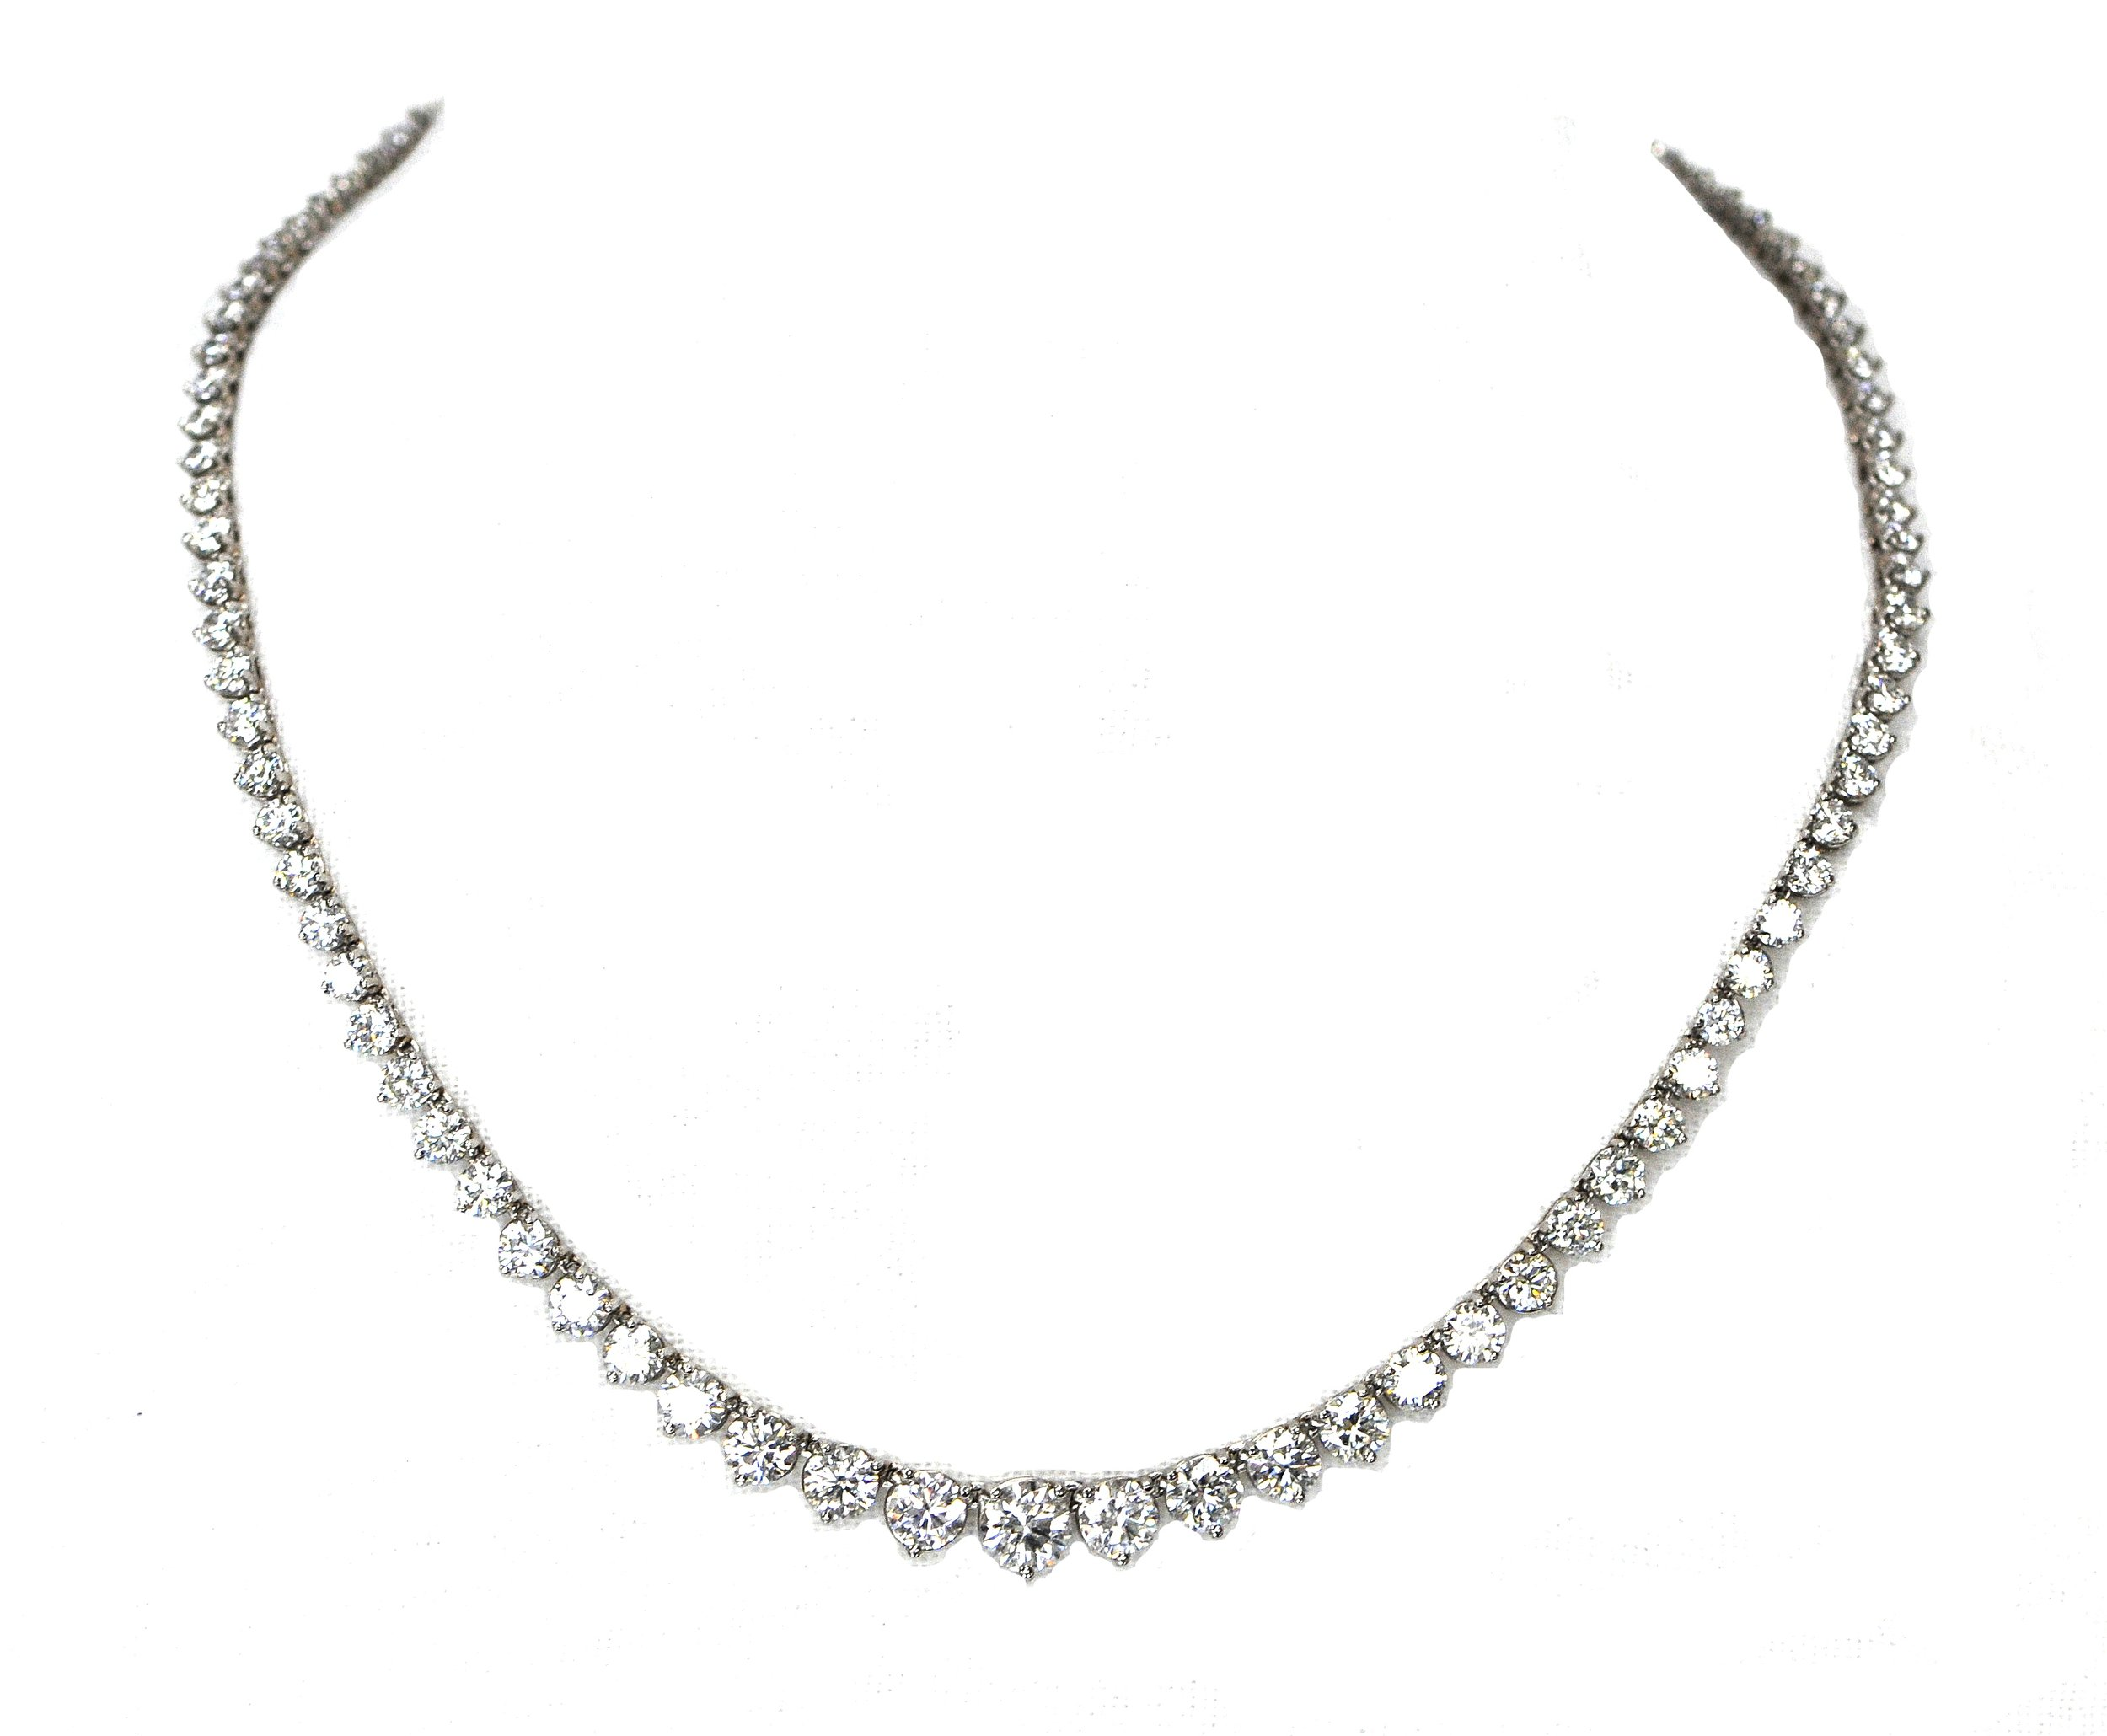 20ct Diamond Riviera Necklace